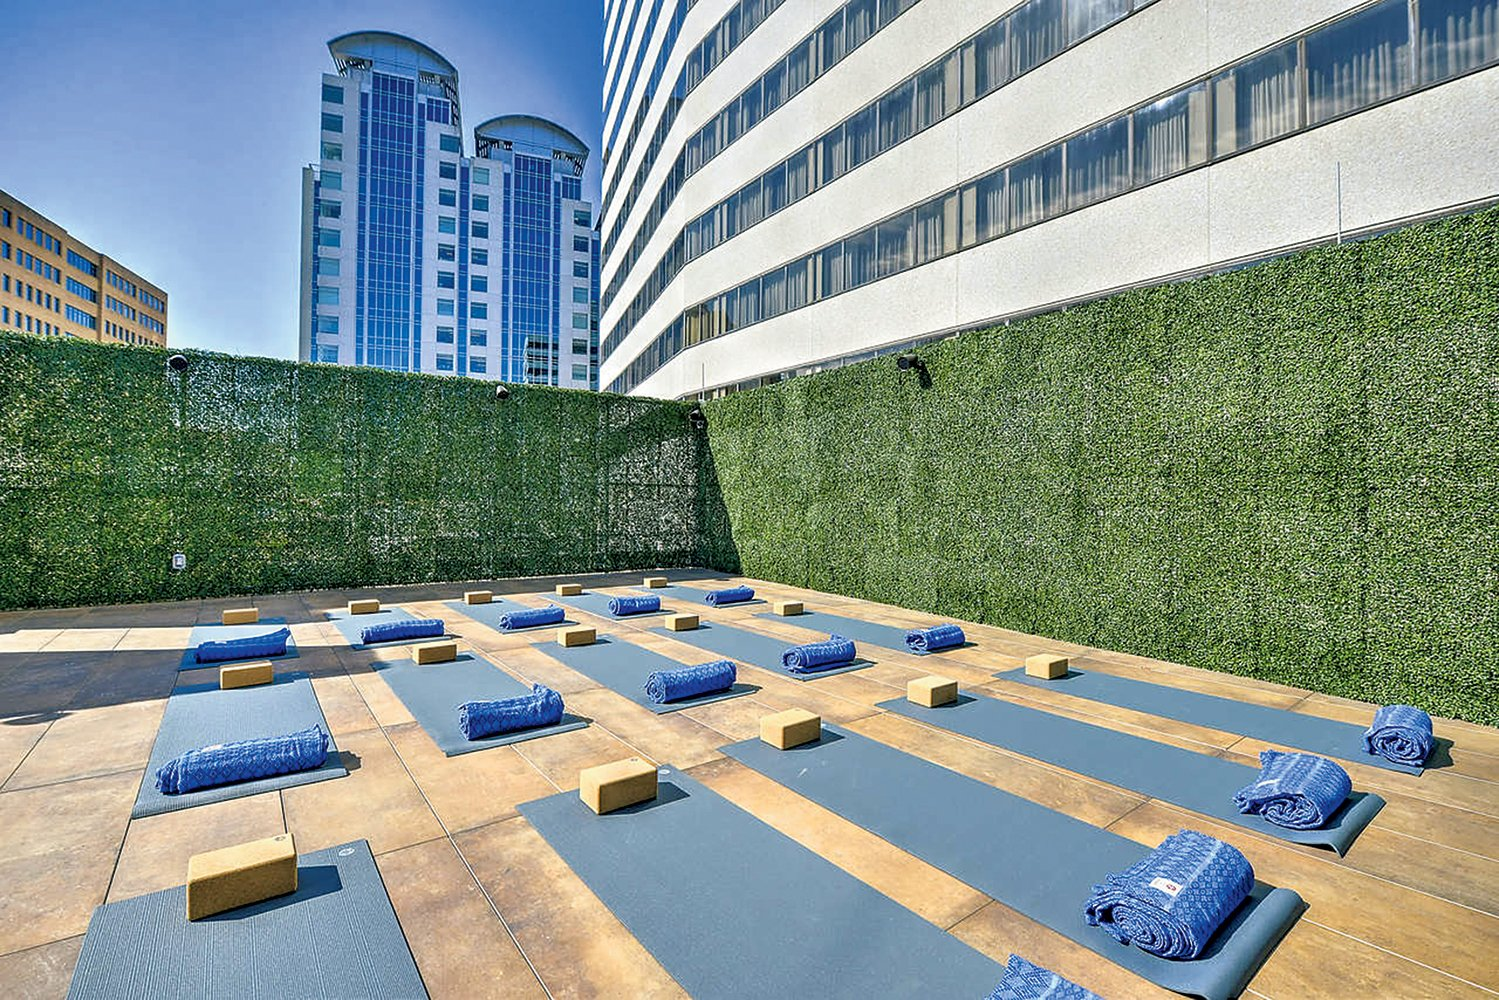 Rooftop yoga at Truebody. Truebody photograph courtesy of Truebody.